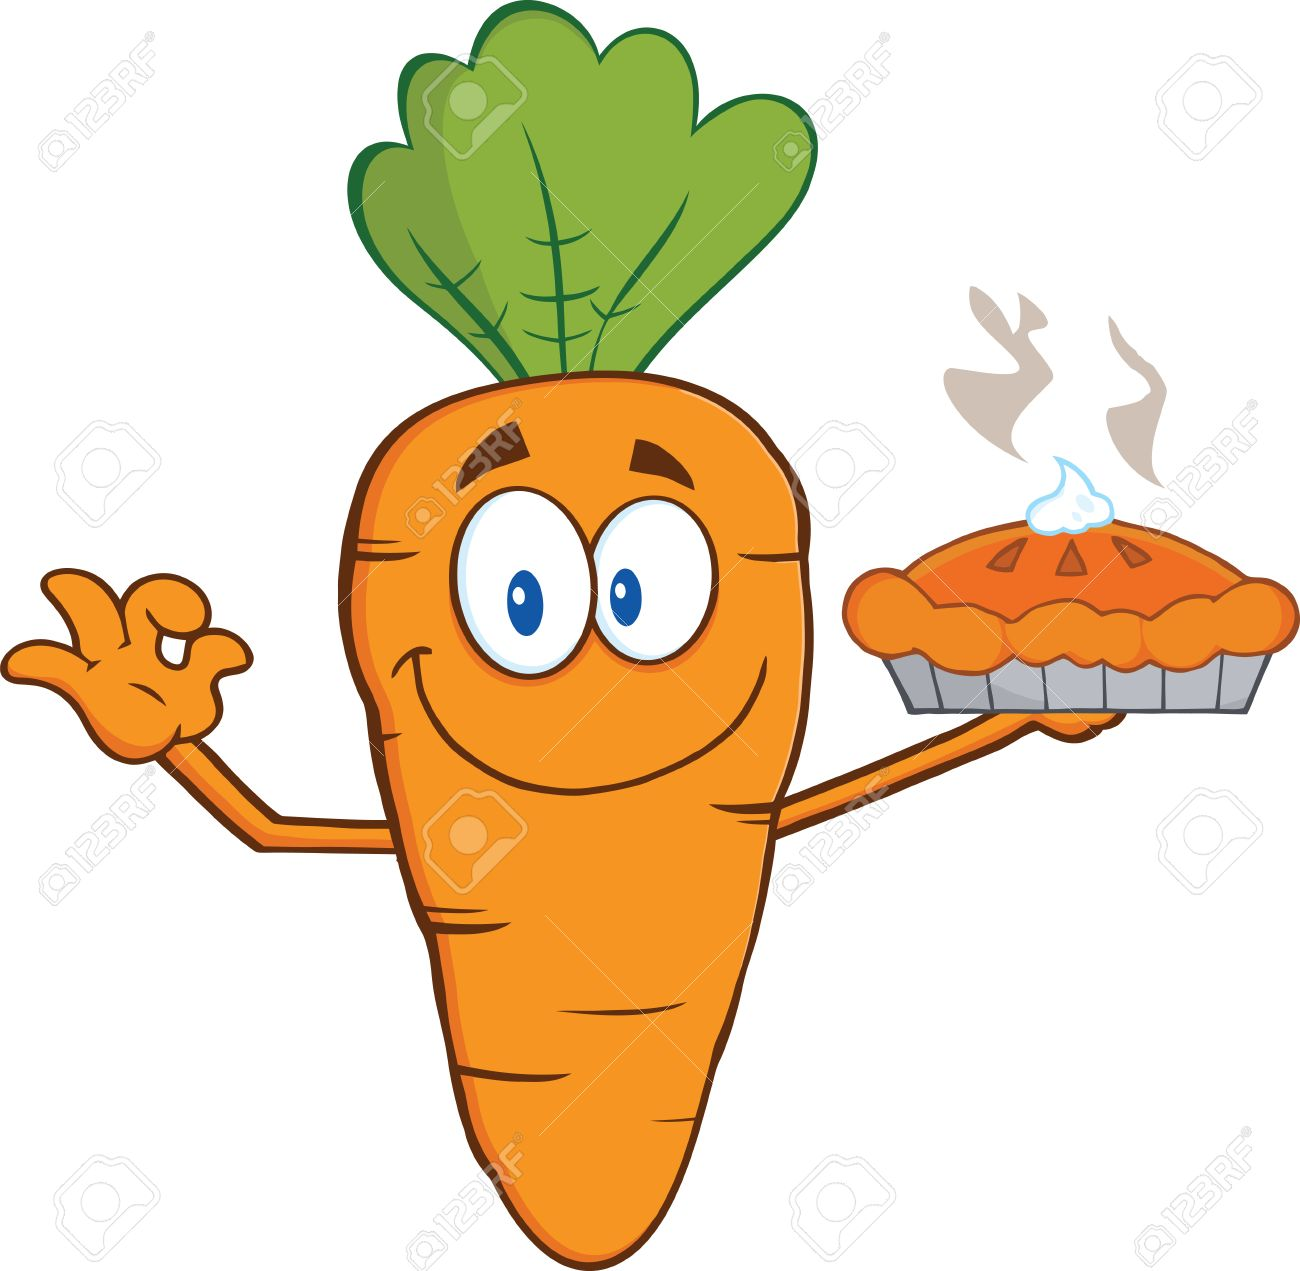 Smiling Carrot Cartoon Character Holding Up A Pie Illustration